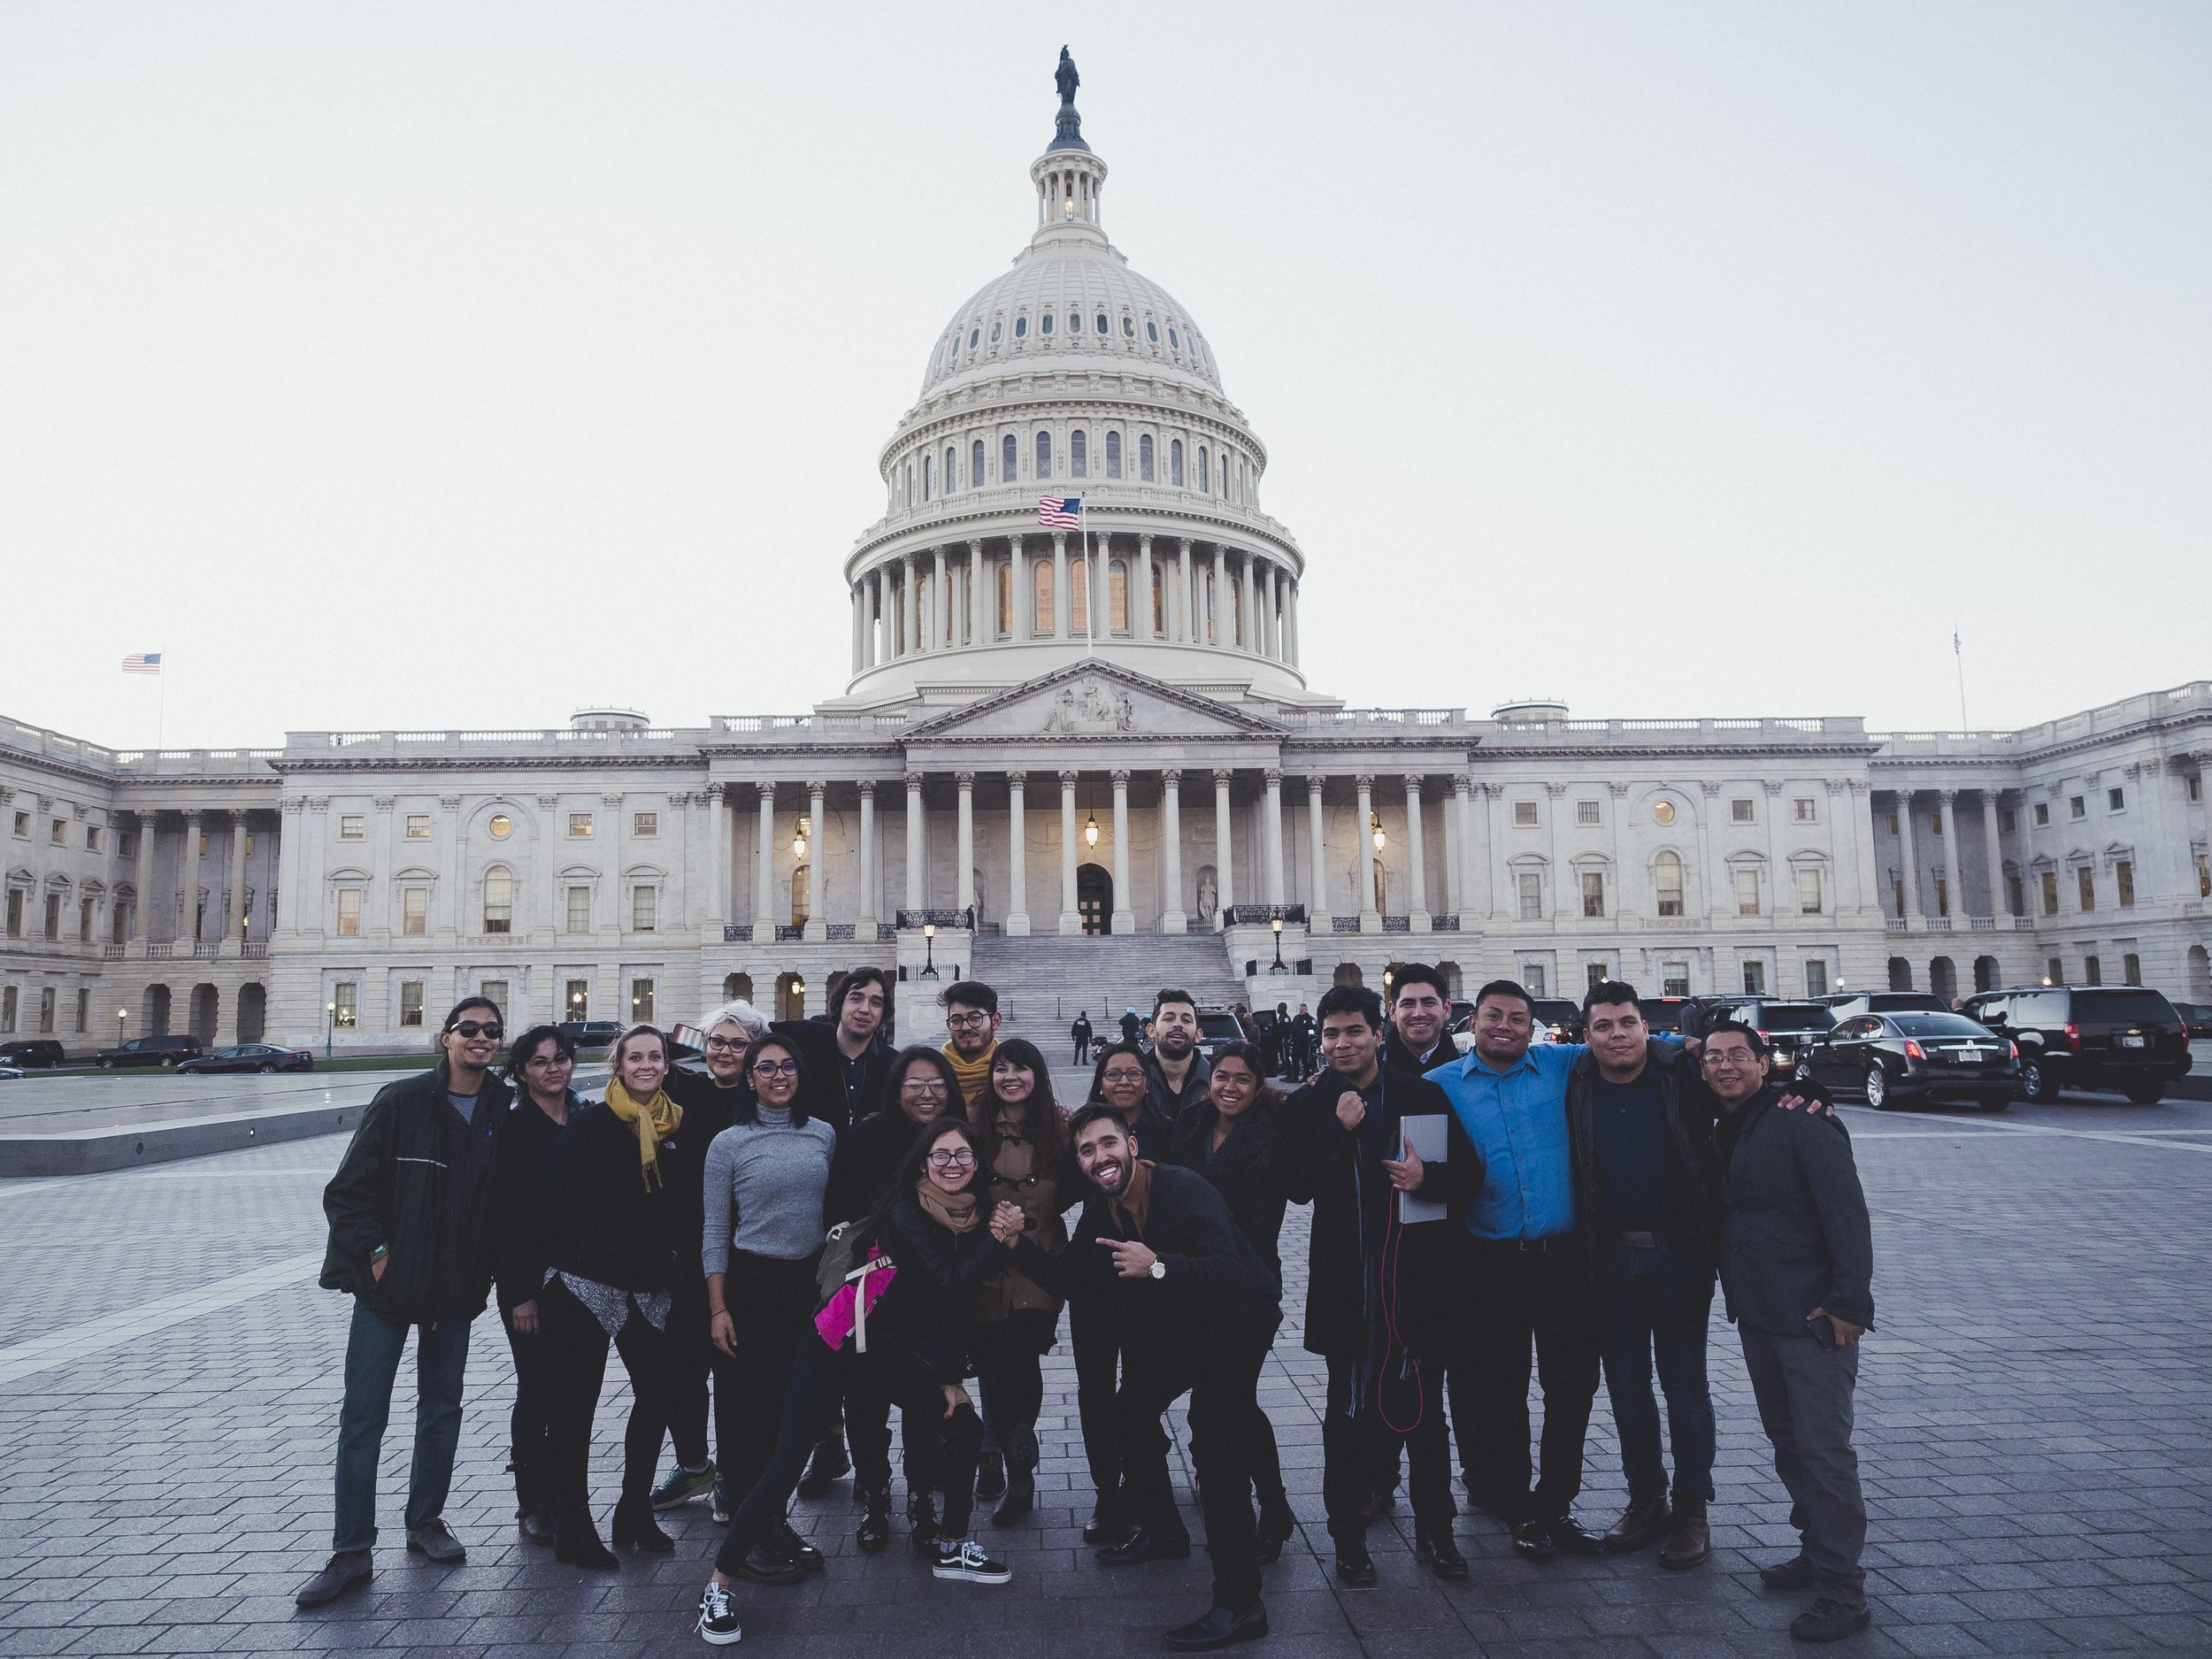 Vote4Dream - The Vote4Dream campaign is a beacon of hope that brings DACA recipients, educators, faith leaders, business owners, and allies together to find a common sense solution for DACA recipients.